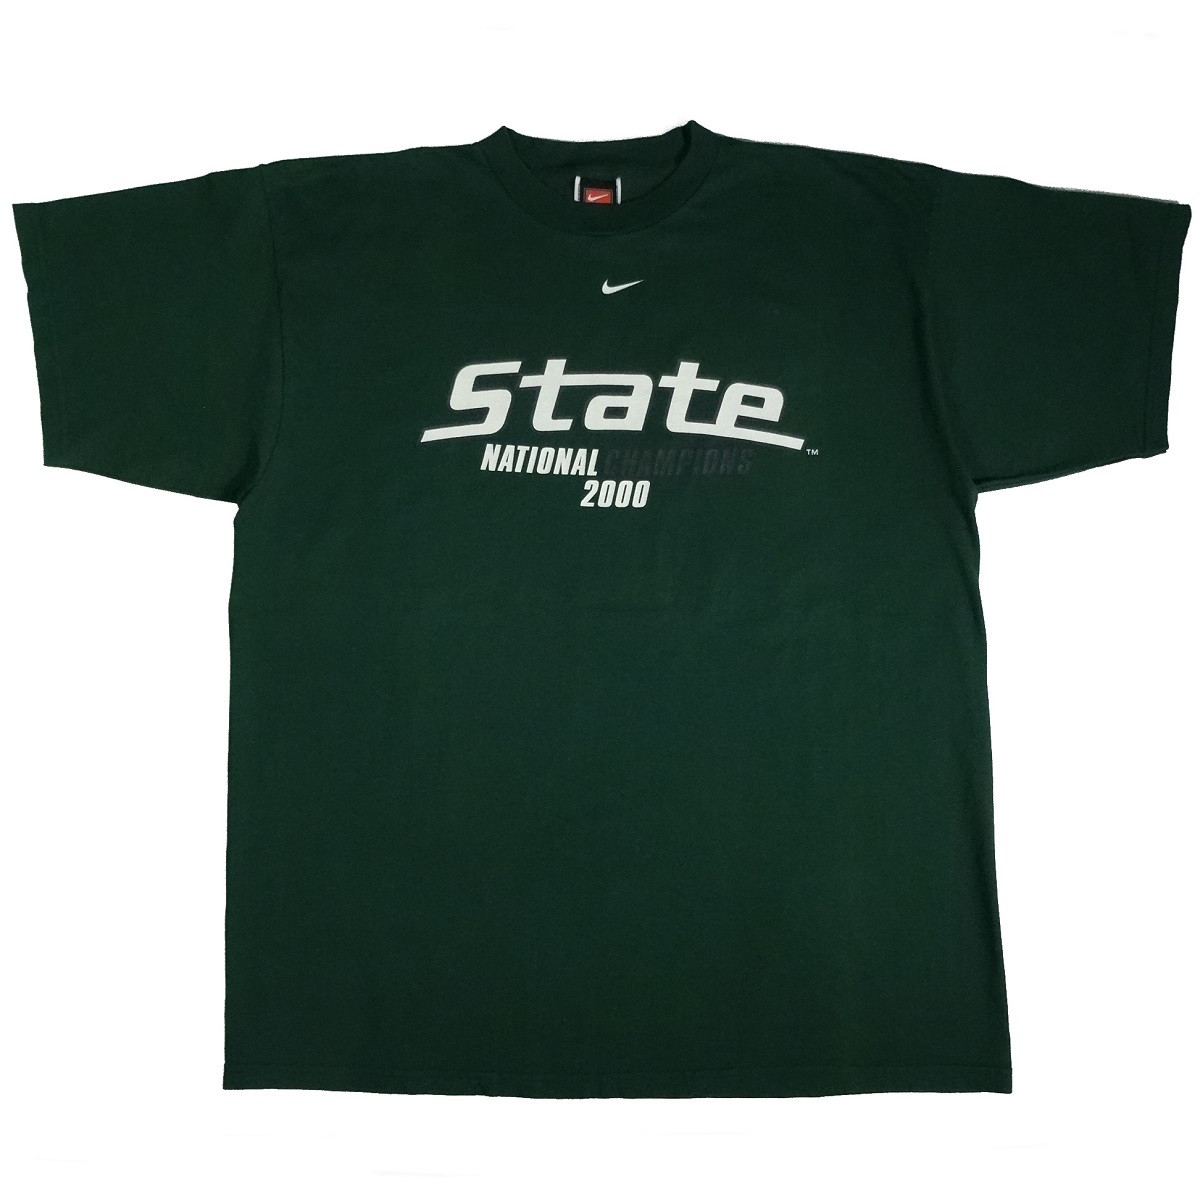 michigan state 2000 national champions vintage nike t shirt front